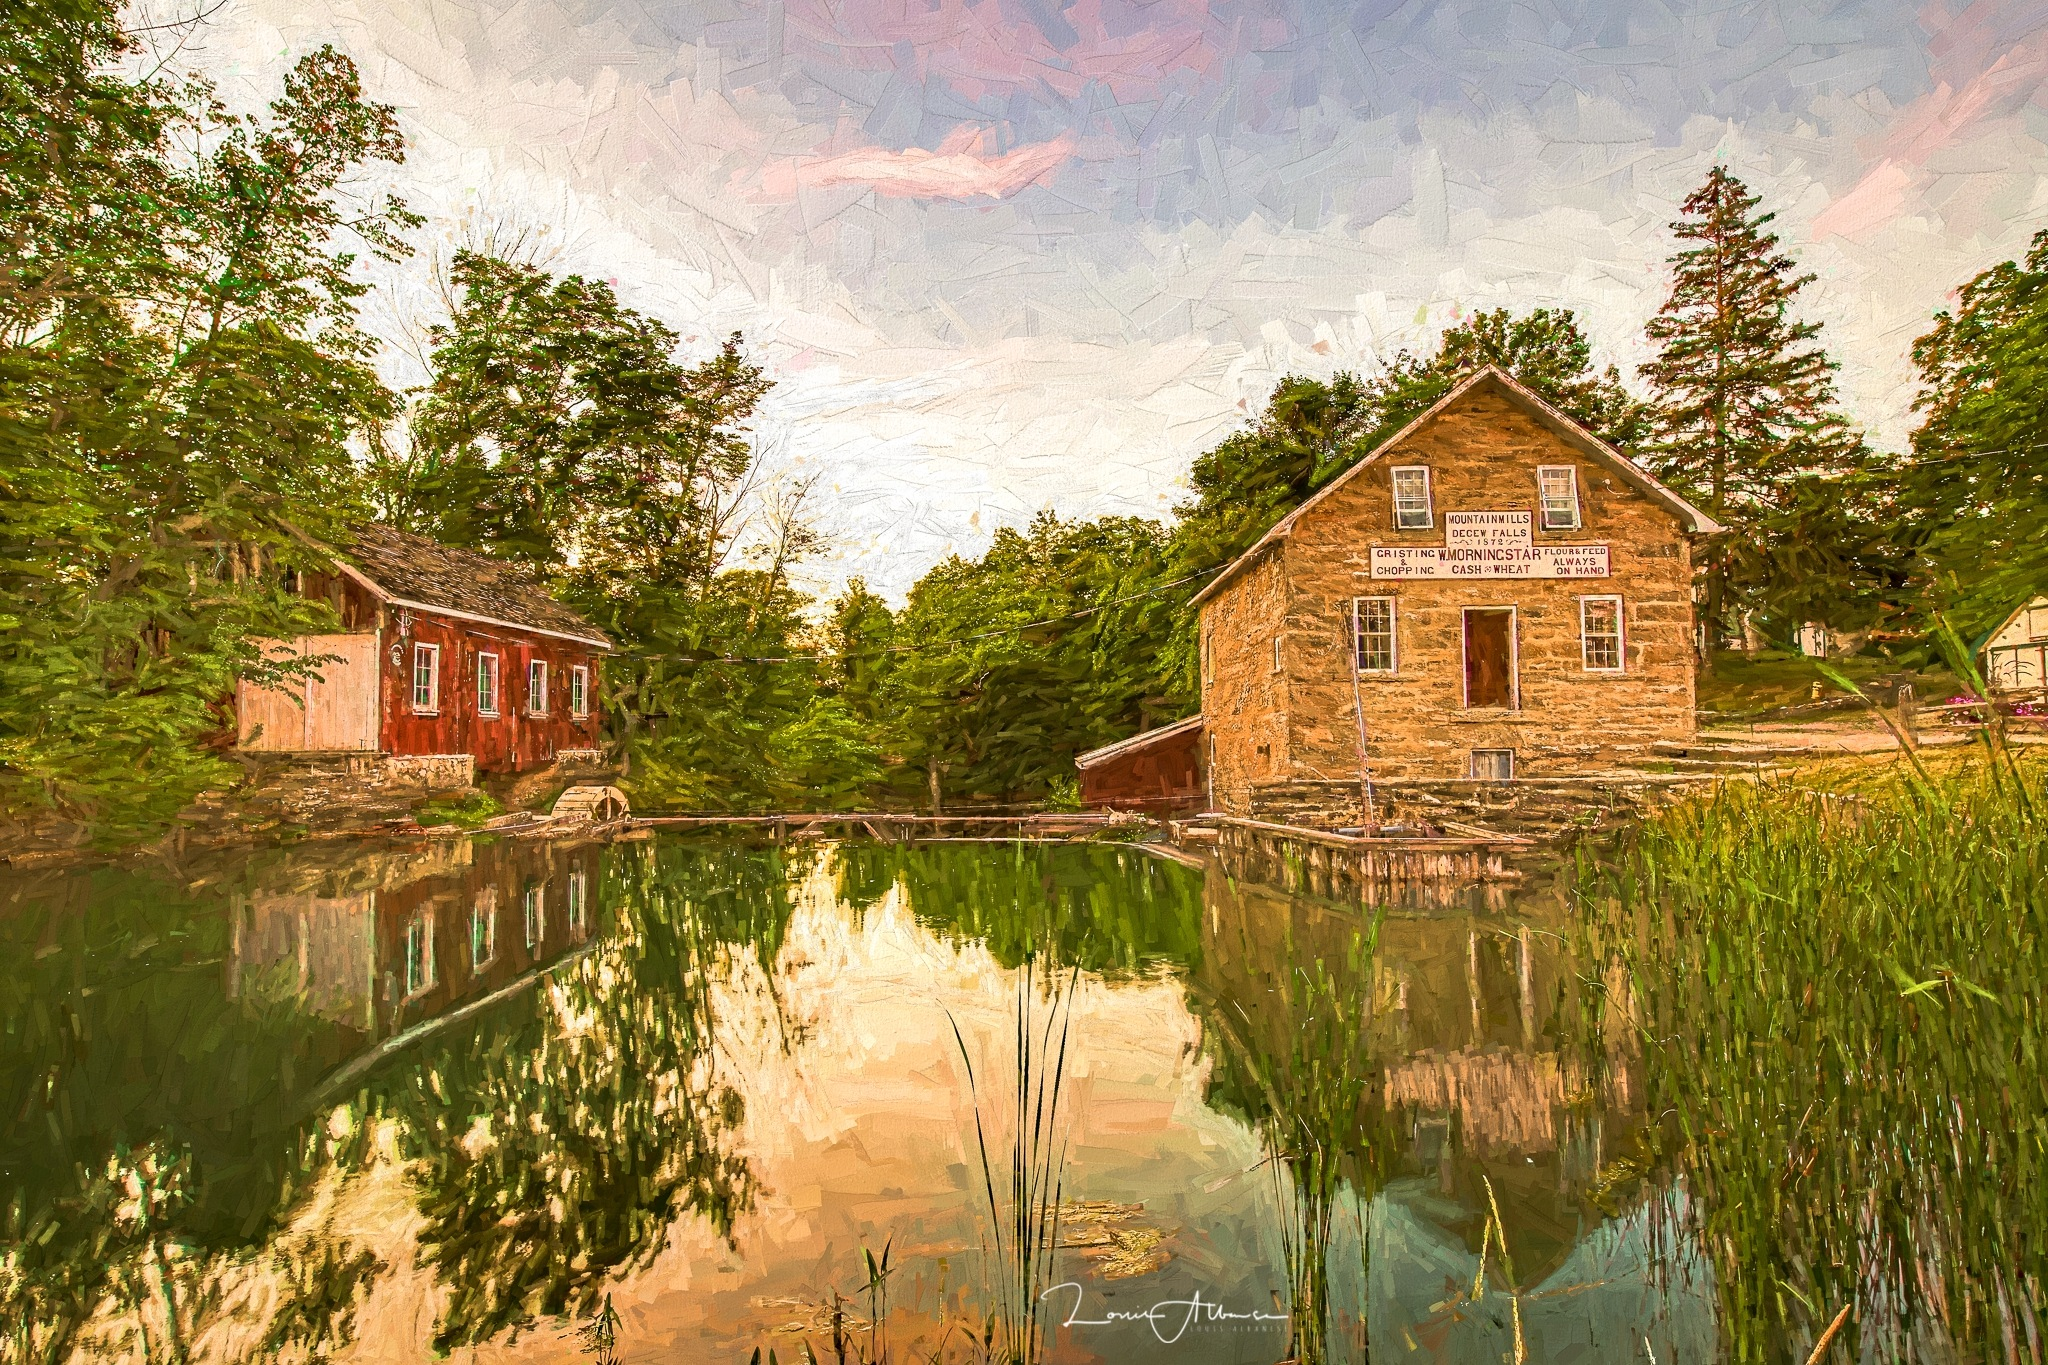 Reflections-Sunset at Morningstar Mill by NakinaManitou